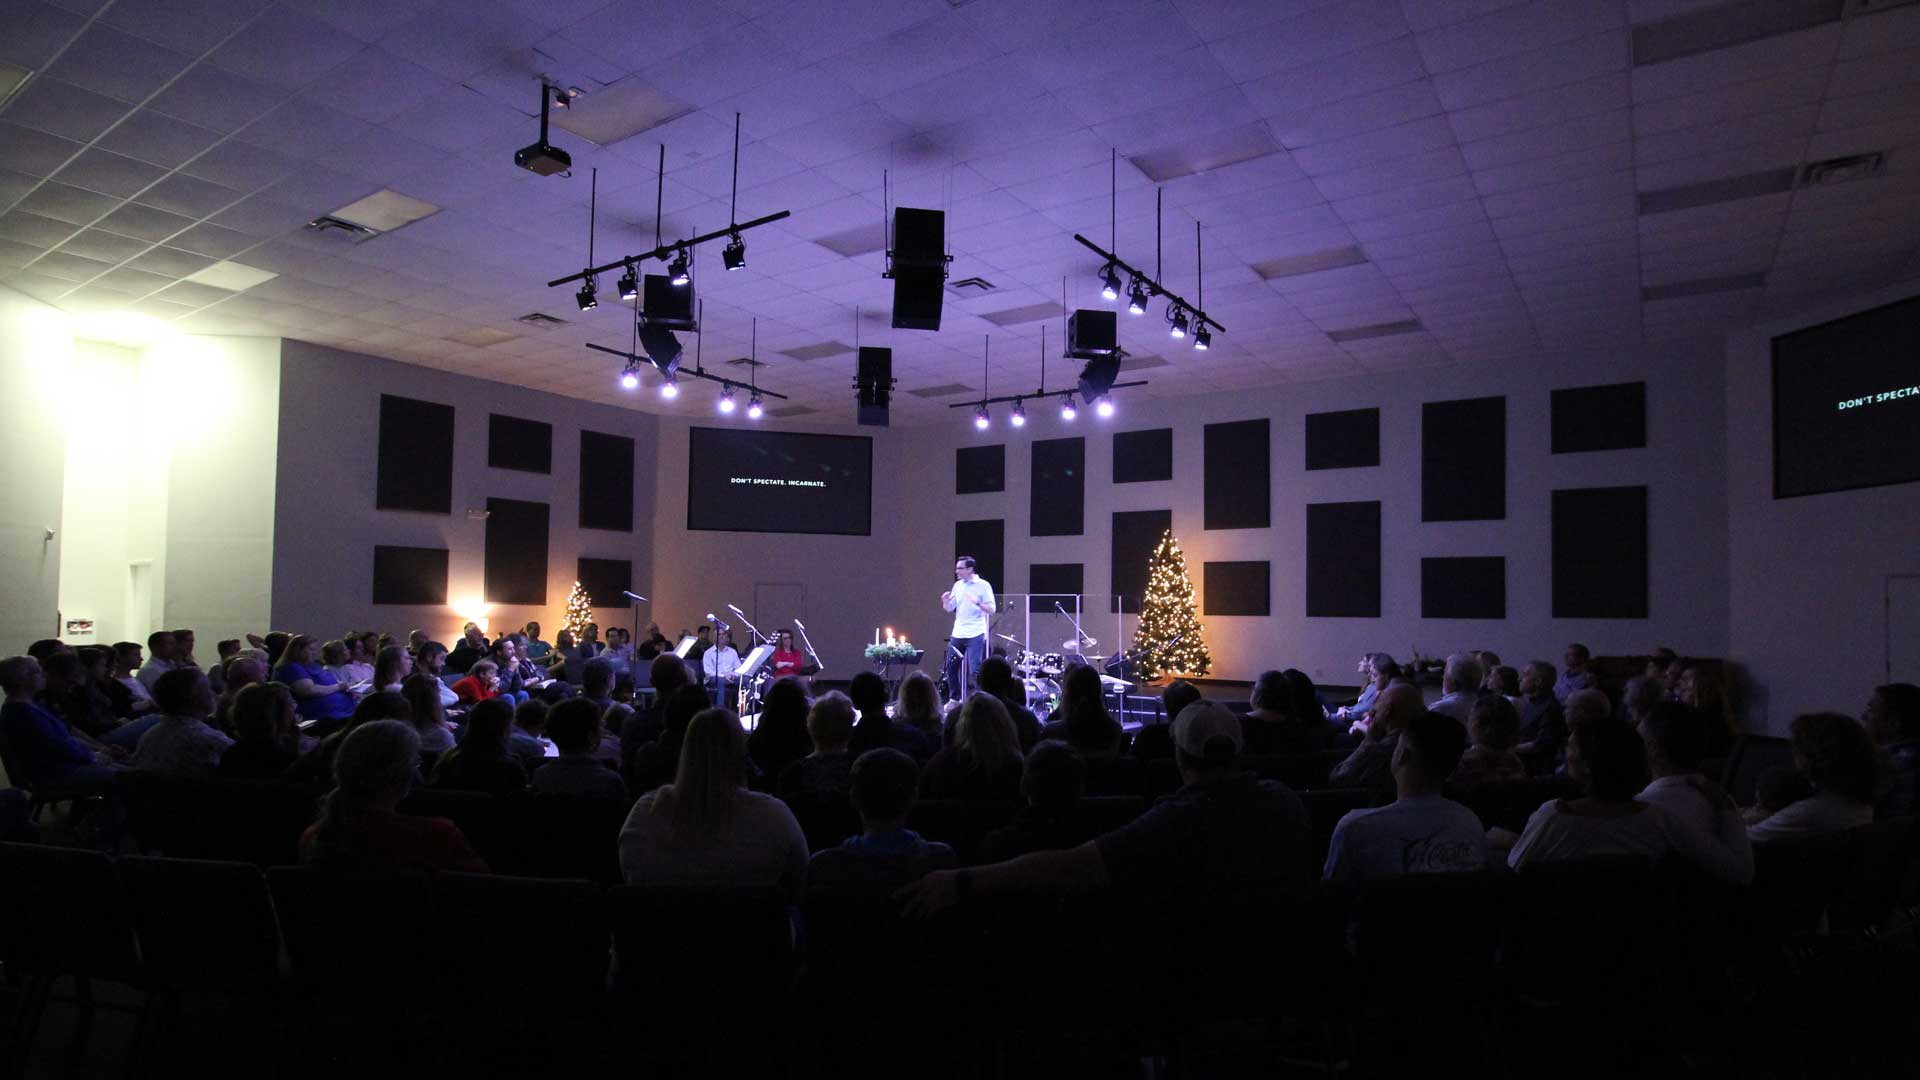 Brick City Church Ocala Florida